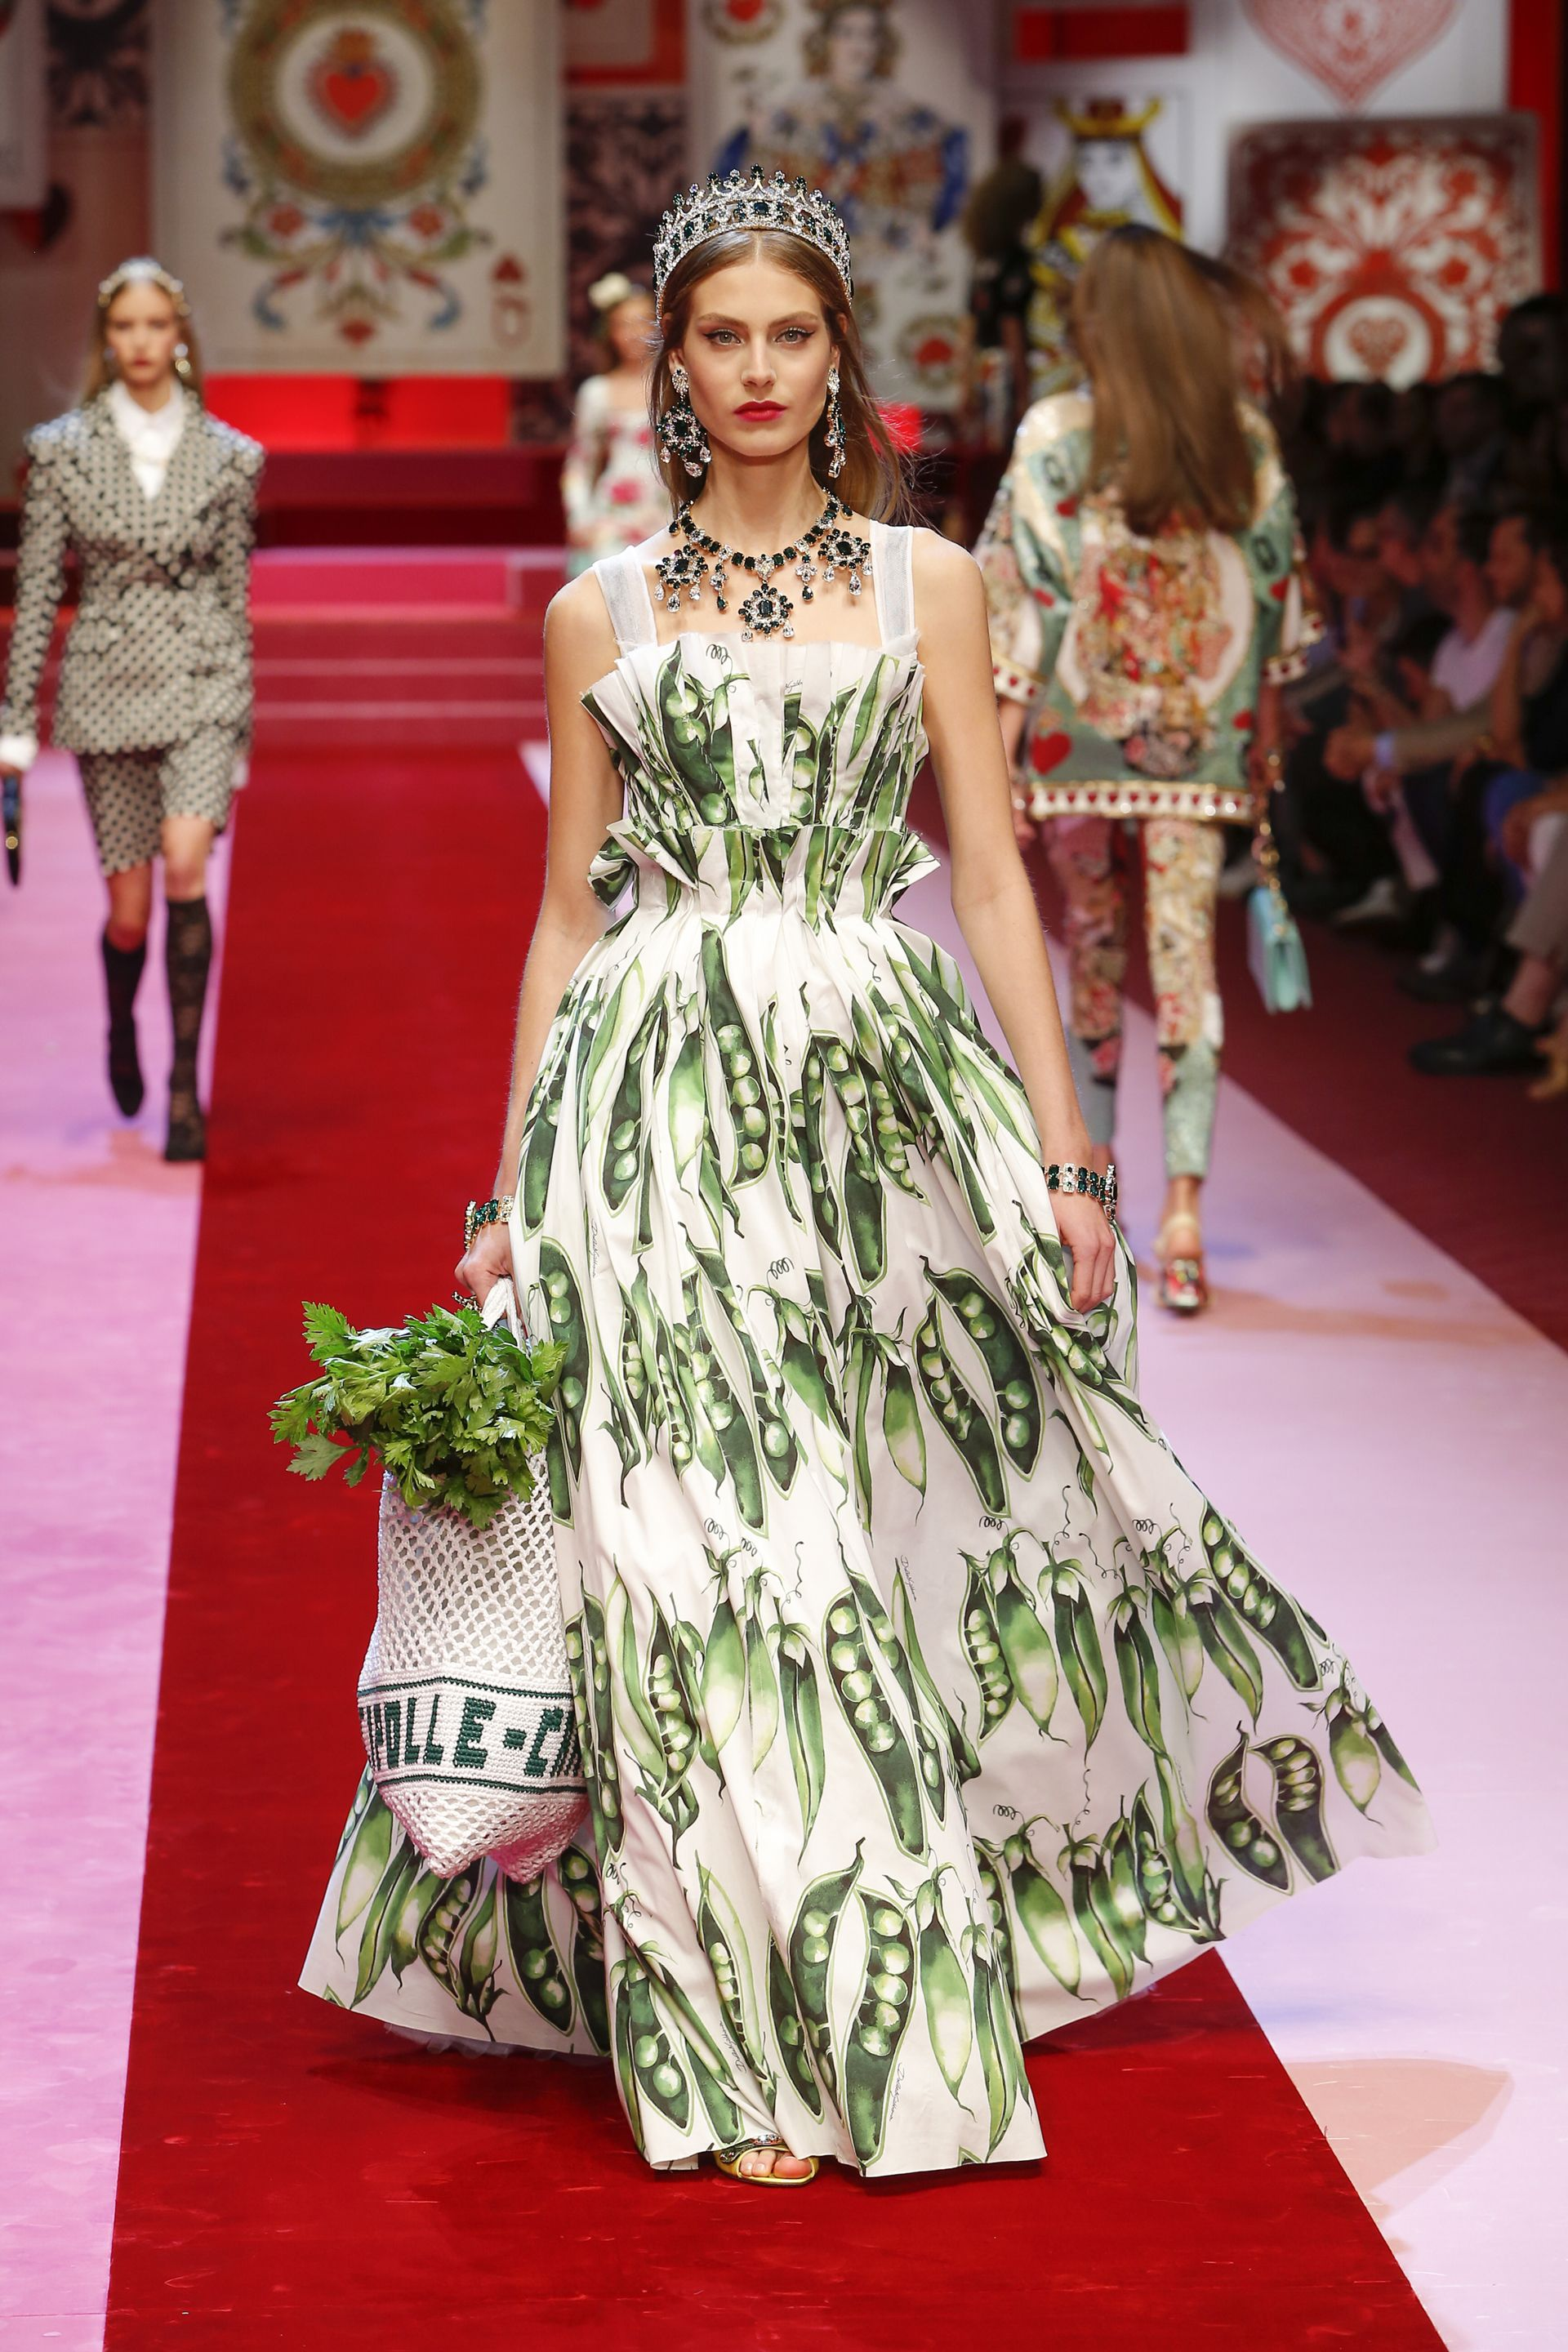 a45a6c274d Discover Videos and Pictures of Dolce & Gabbana Summer 2018 ...